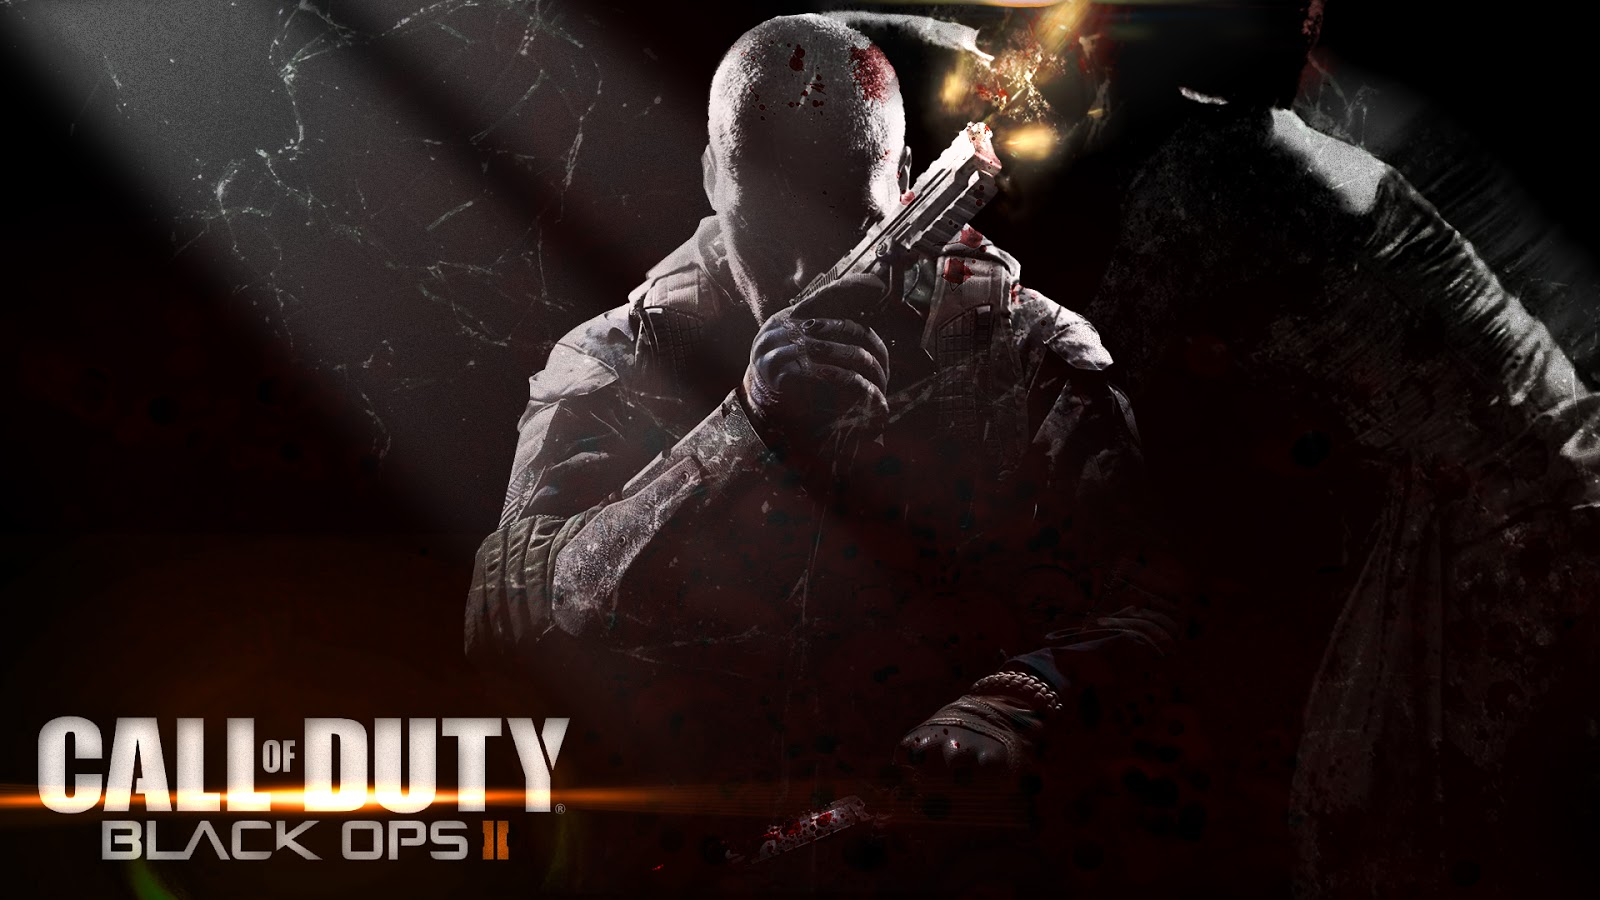 call of duty black ops 2 zombies | wallpaper speed art | tiger spik